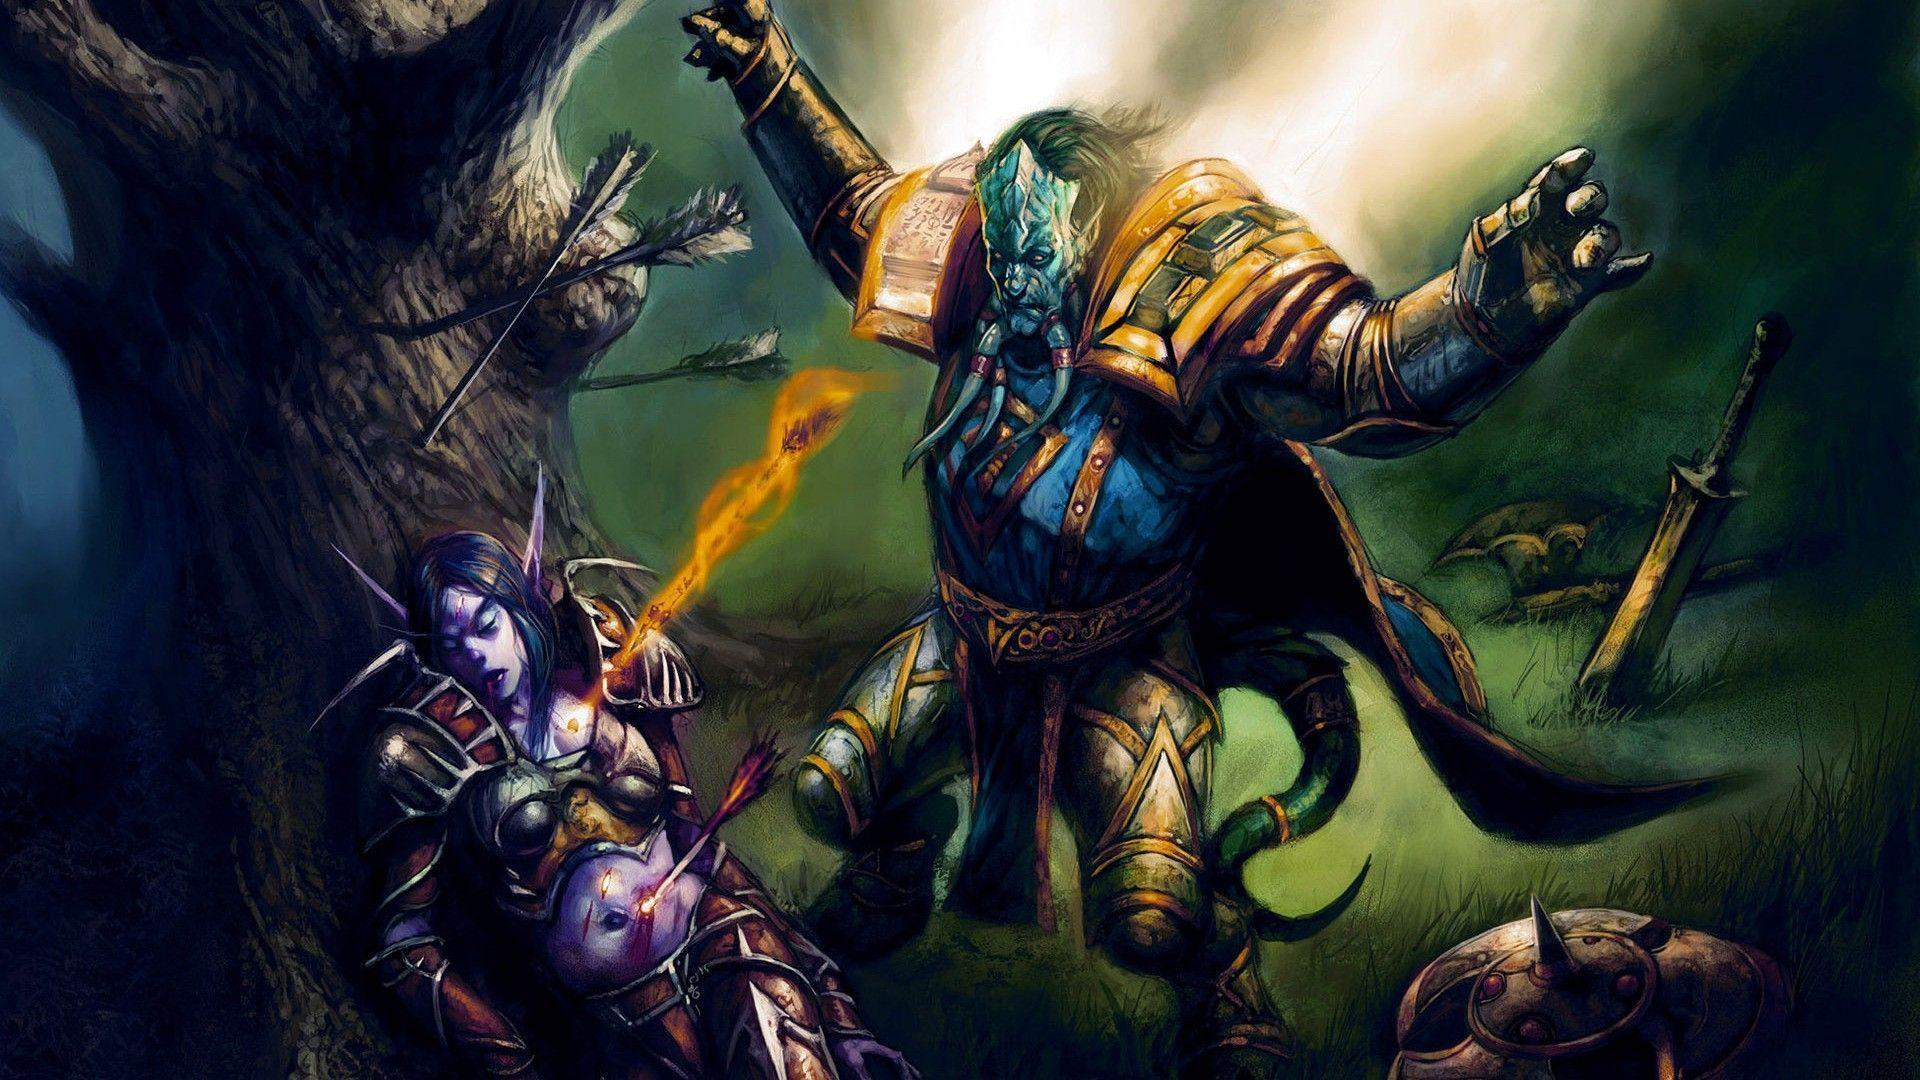 world of warcraft HD Games Wallpapers 1920x1080